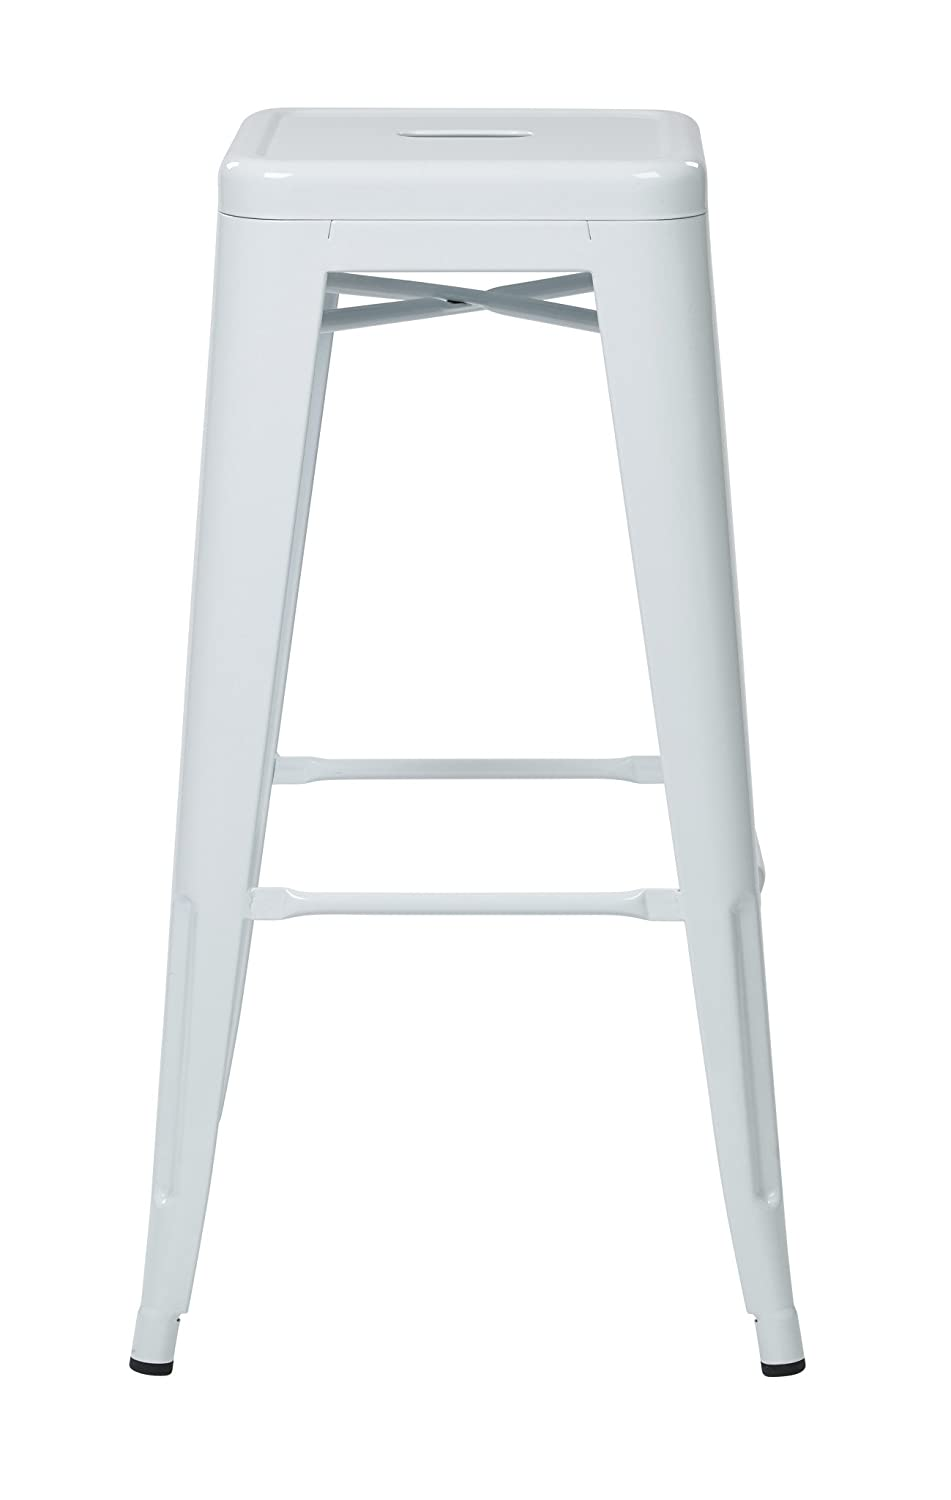 OSP Designs Patterson 30-inch Metal Backless Barstool, White, 2-Pack